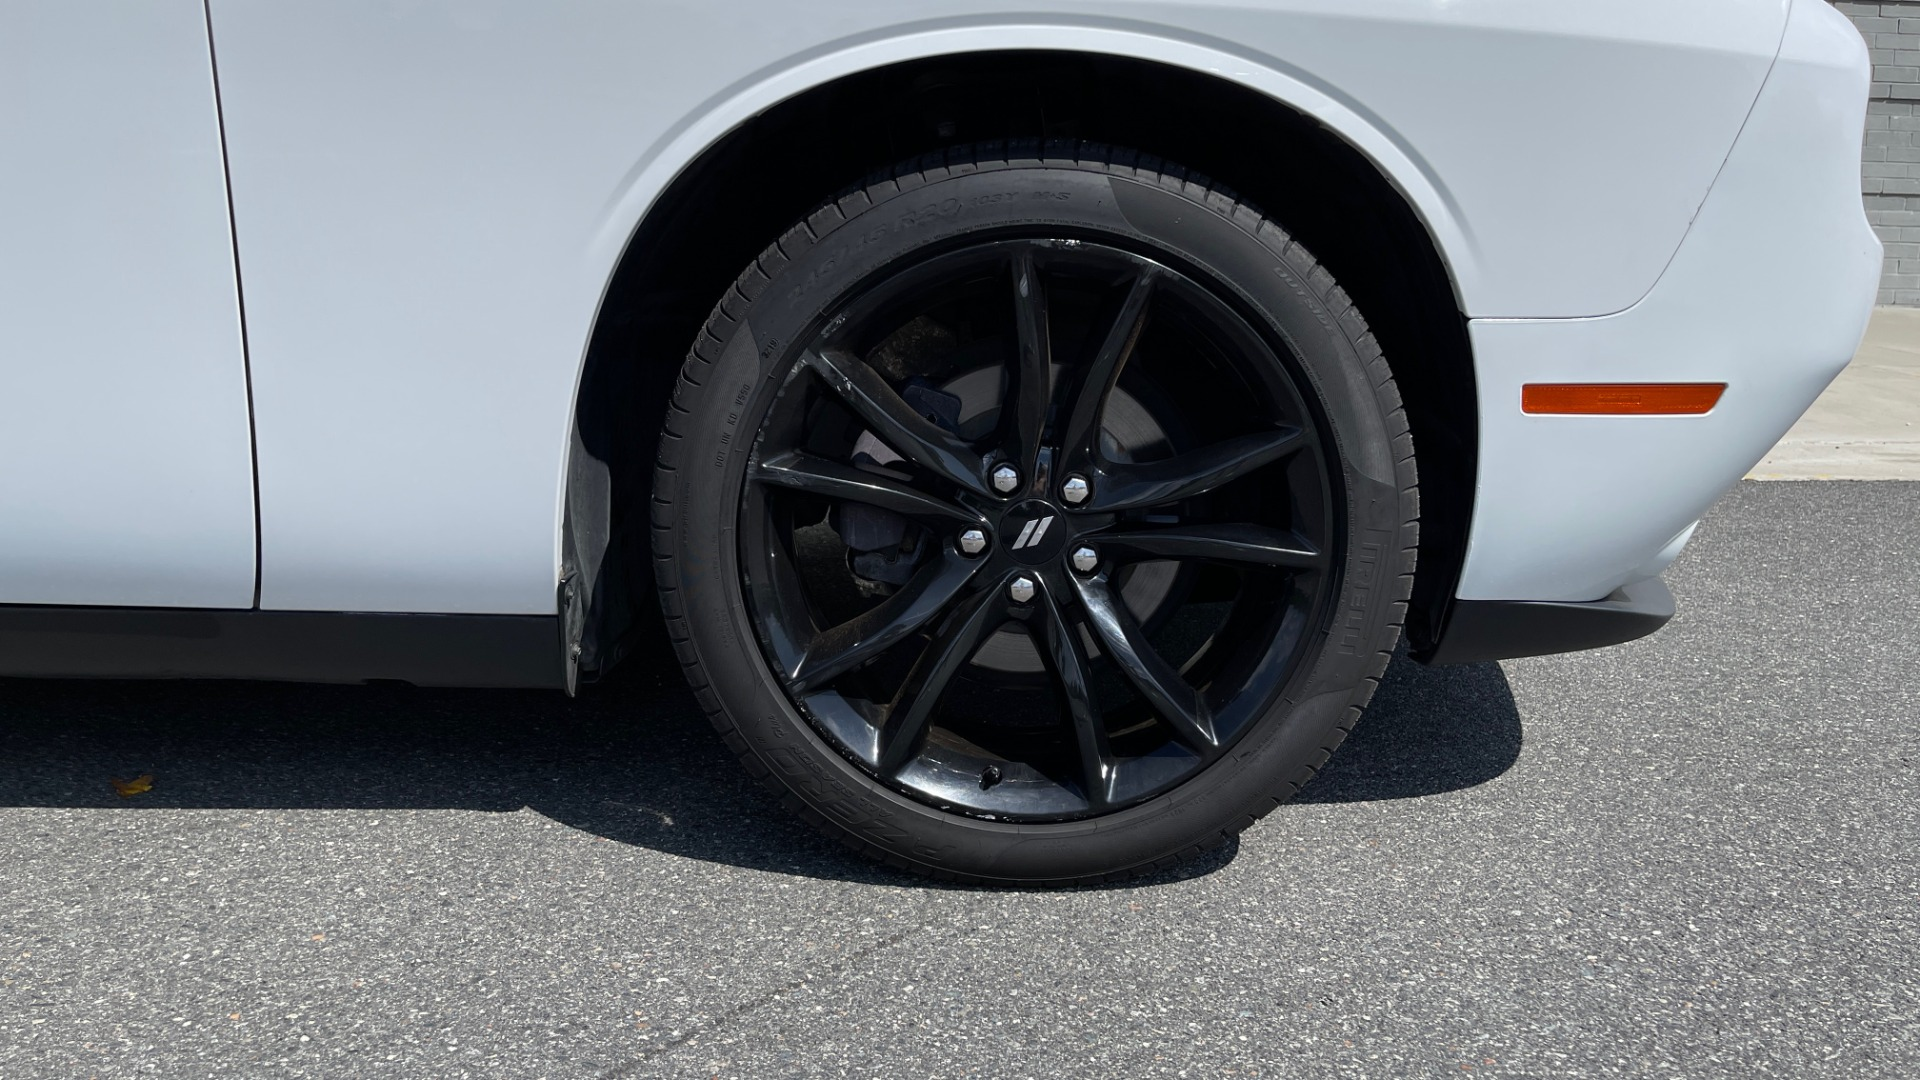 Used 2018 Dodge CHALLENGER SXT COUPE / BLACKTOP PKG / 3.6L V6 / 8-SPD AUTO / REARVIEW for sale $31,995 at Formula Imports in Charlotte NC 28227 60